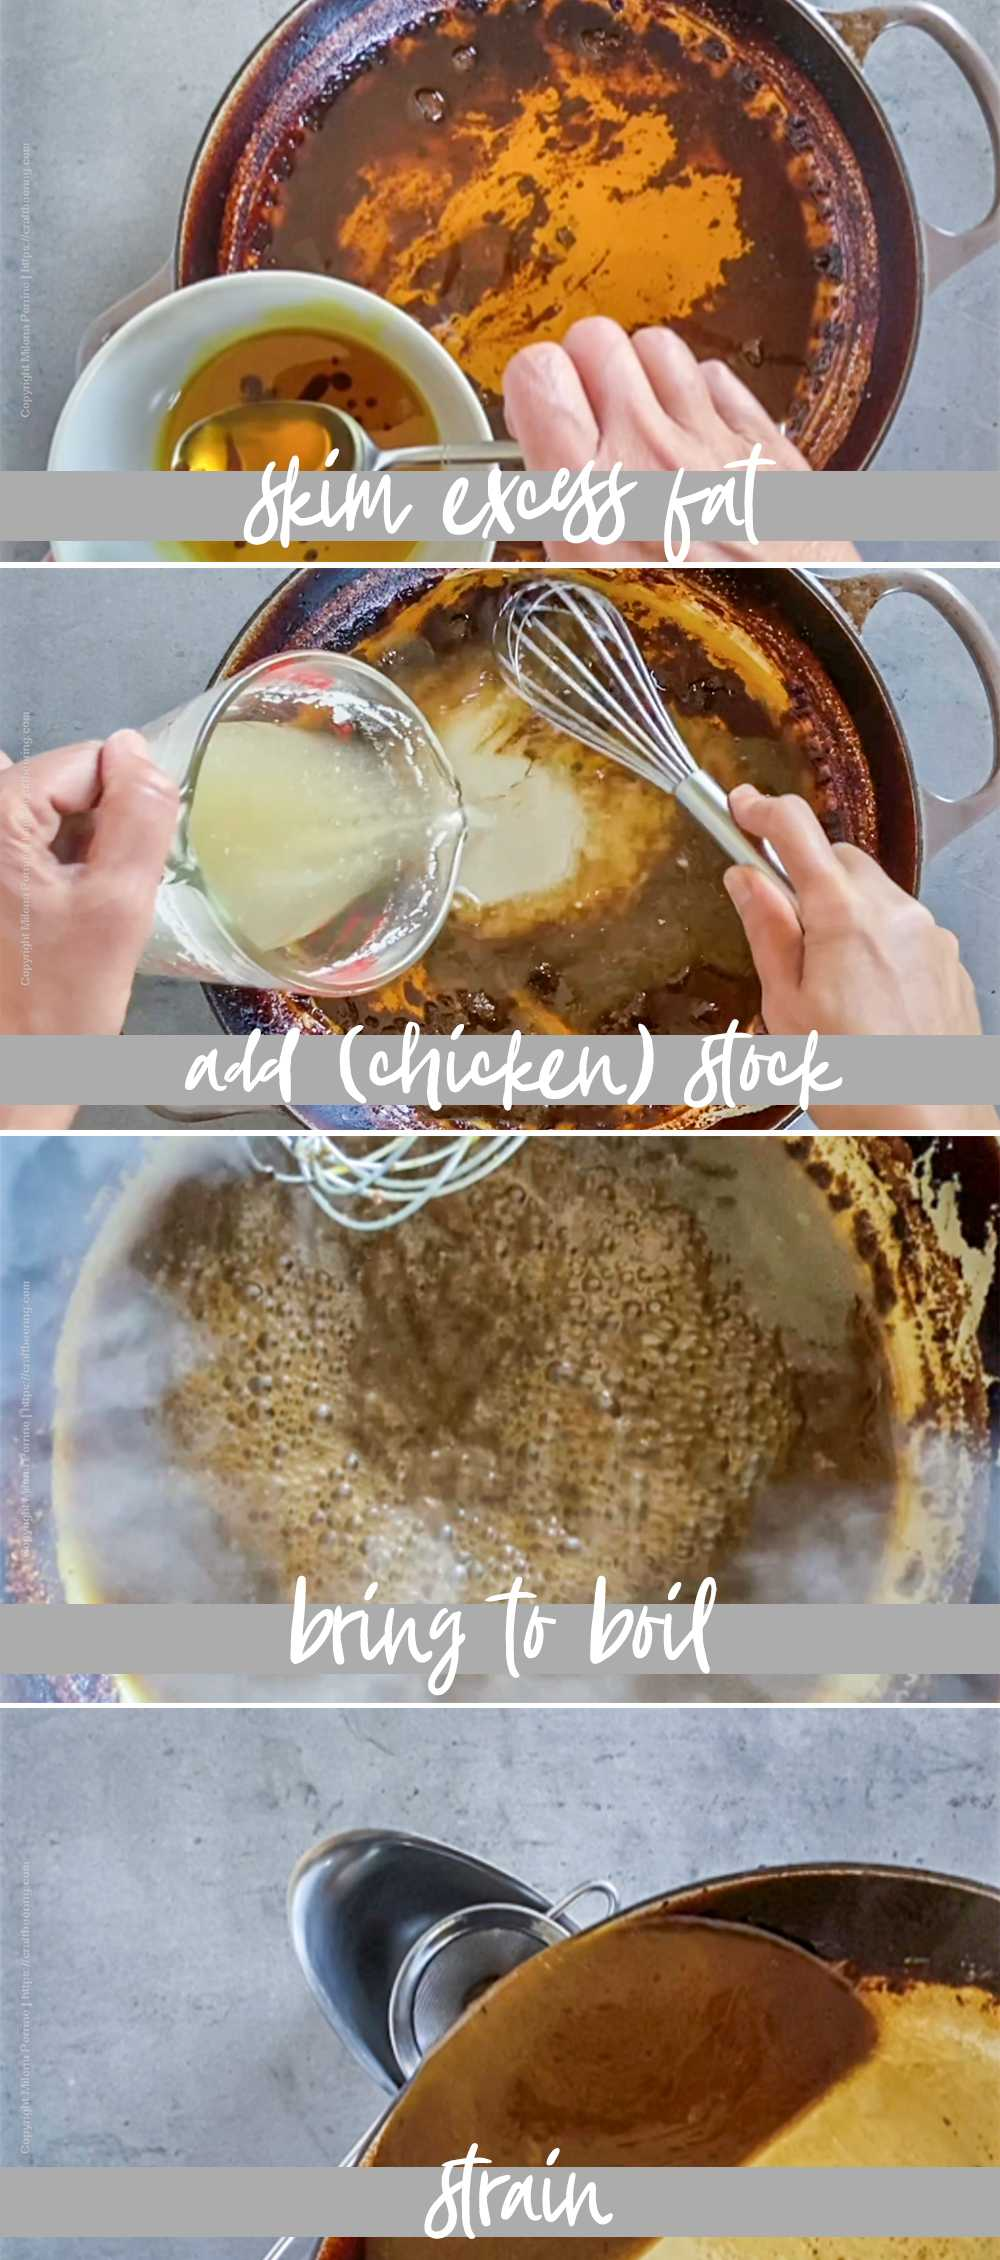 Step by step images showing how to make sauce from the braising liquid of lamb leg.